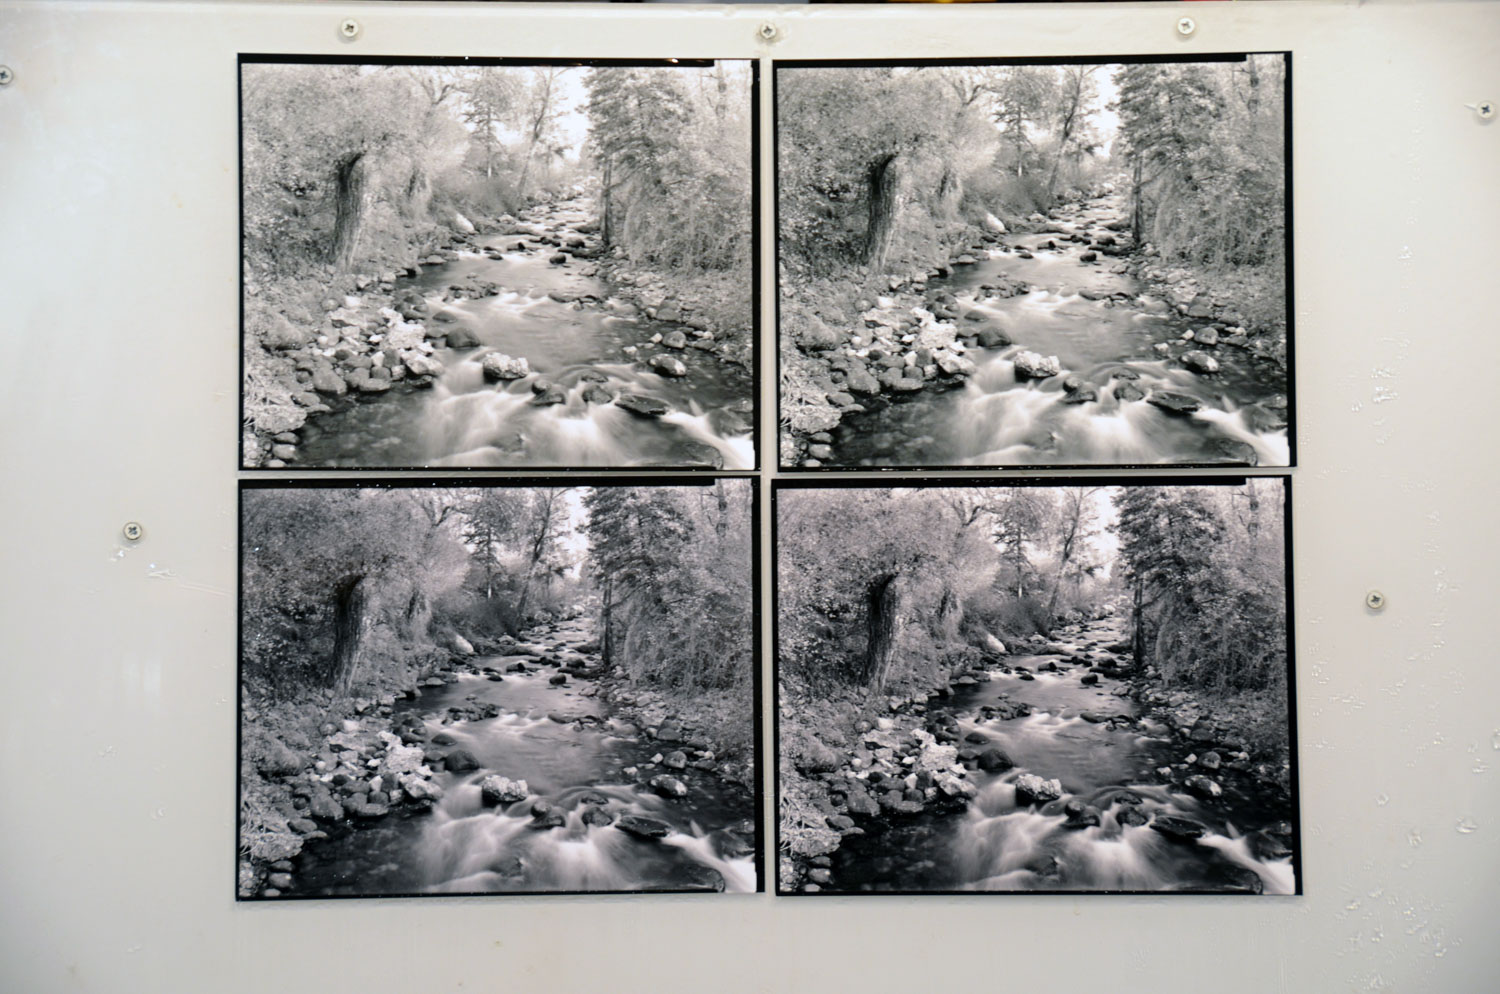 Contact Print Comparison (left to right). Top row - MGIV and MG RC untoned. Bottom row - MGIV and MG RC toned